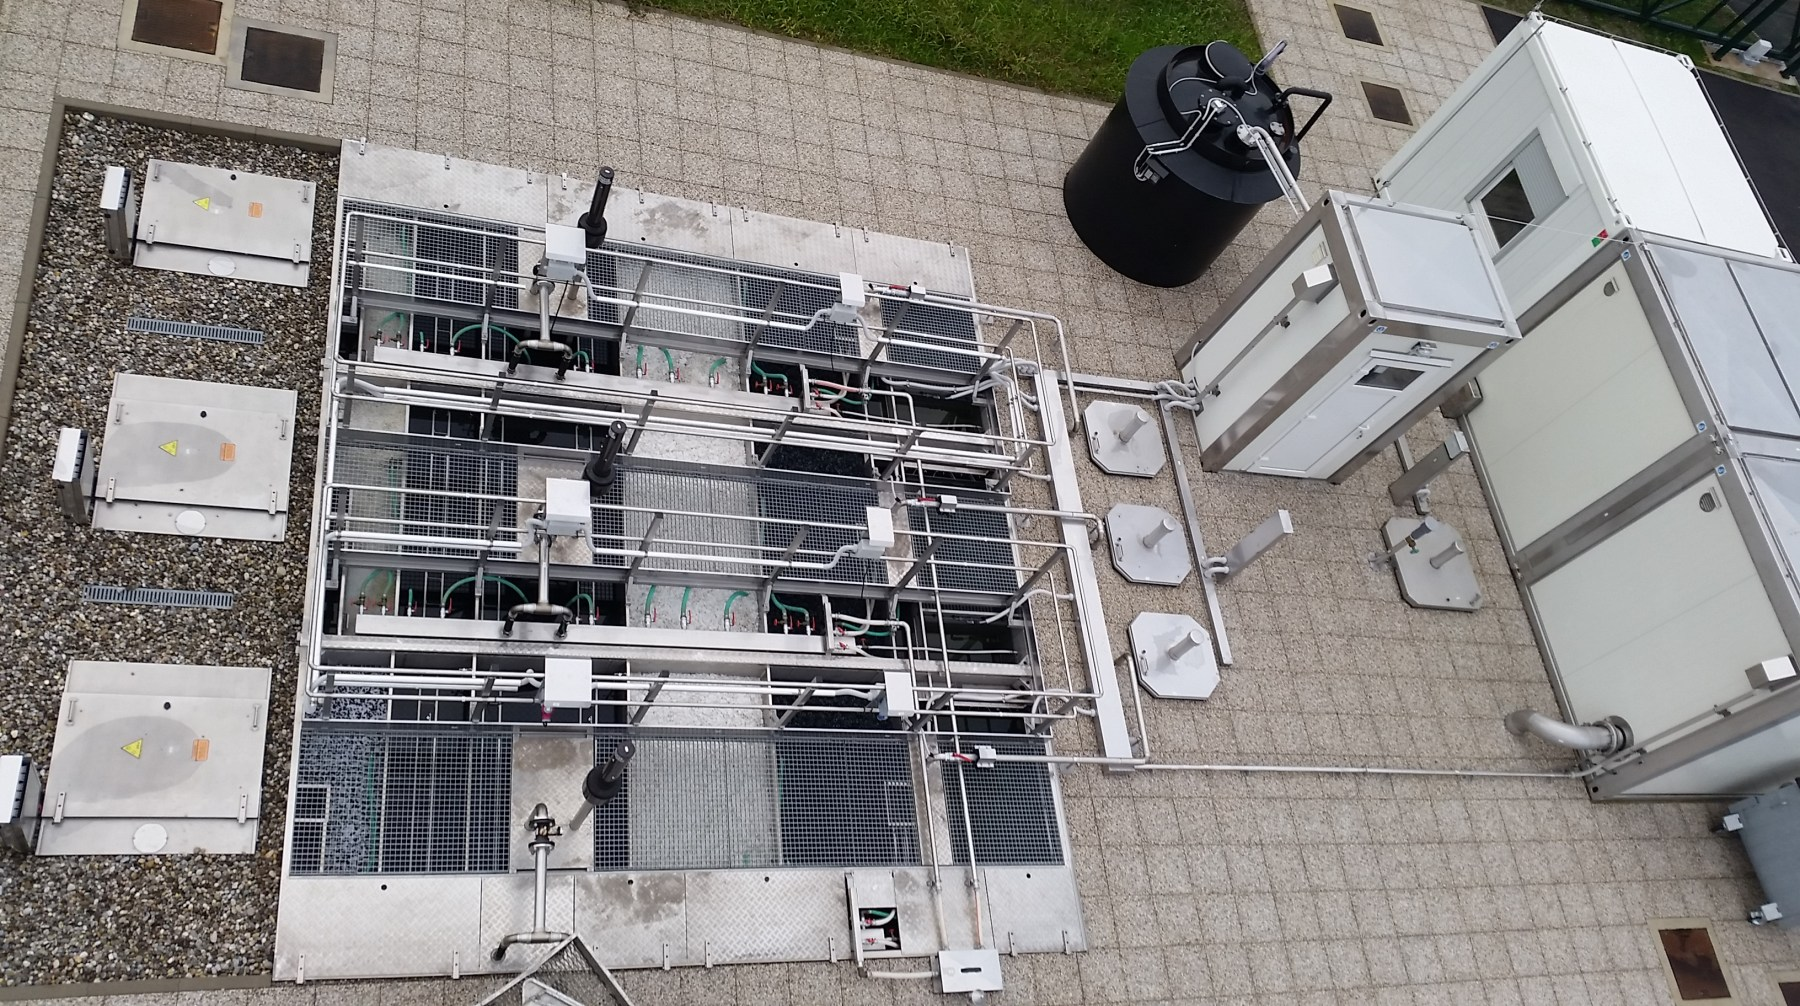 wastewater treatment system from above